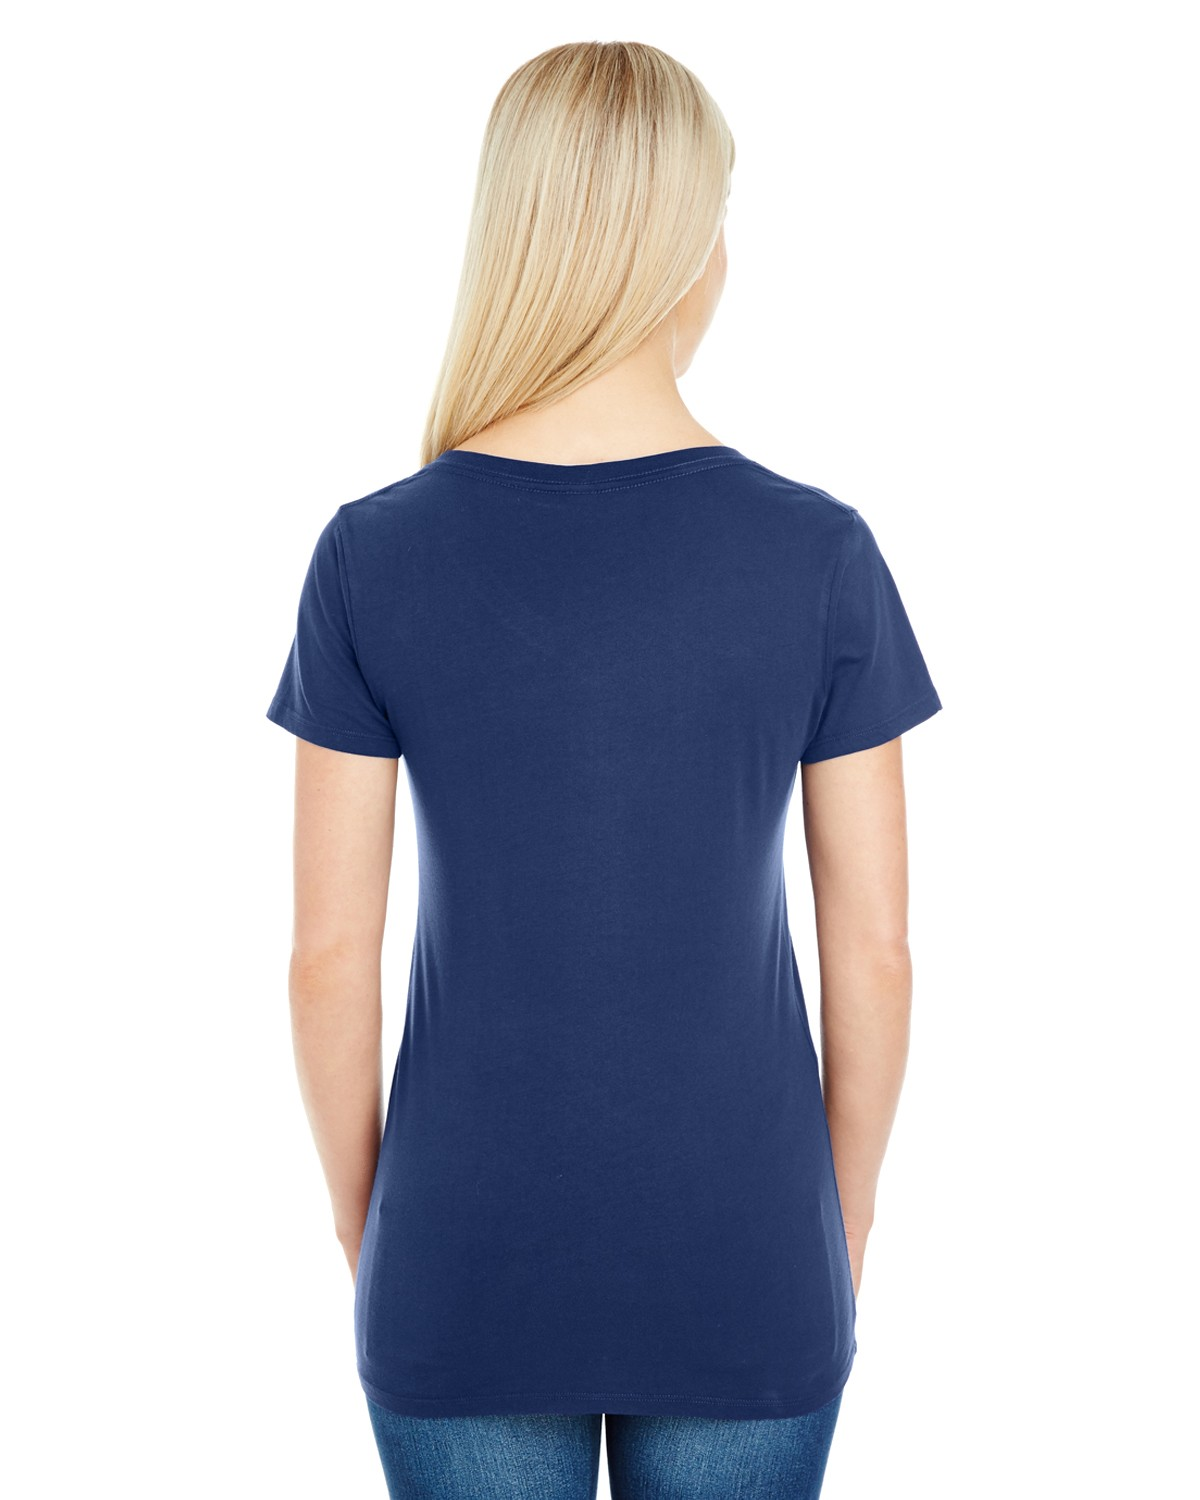 230B Threadfast Apparel NAVY